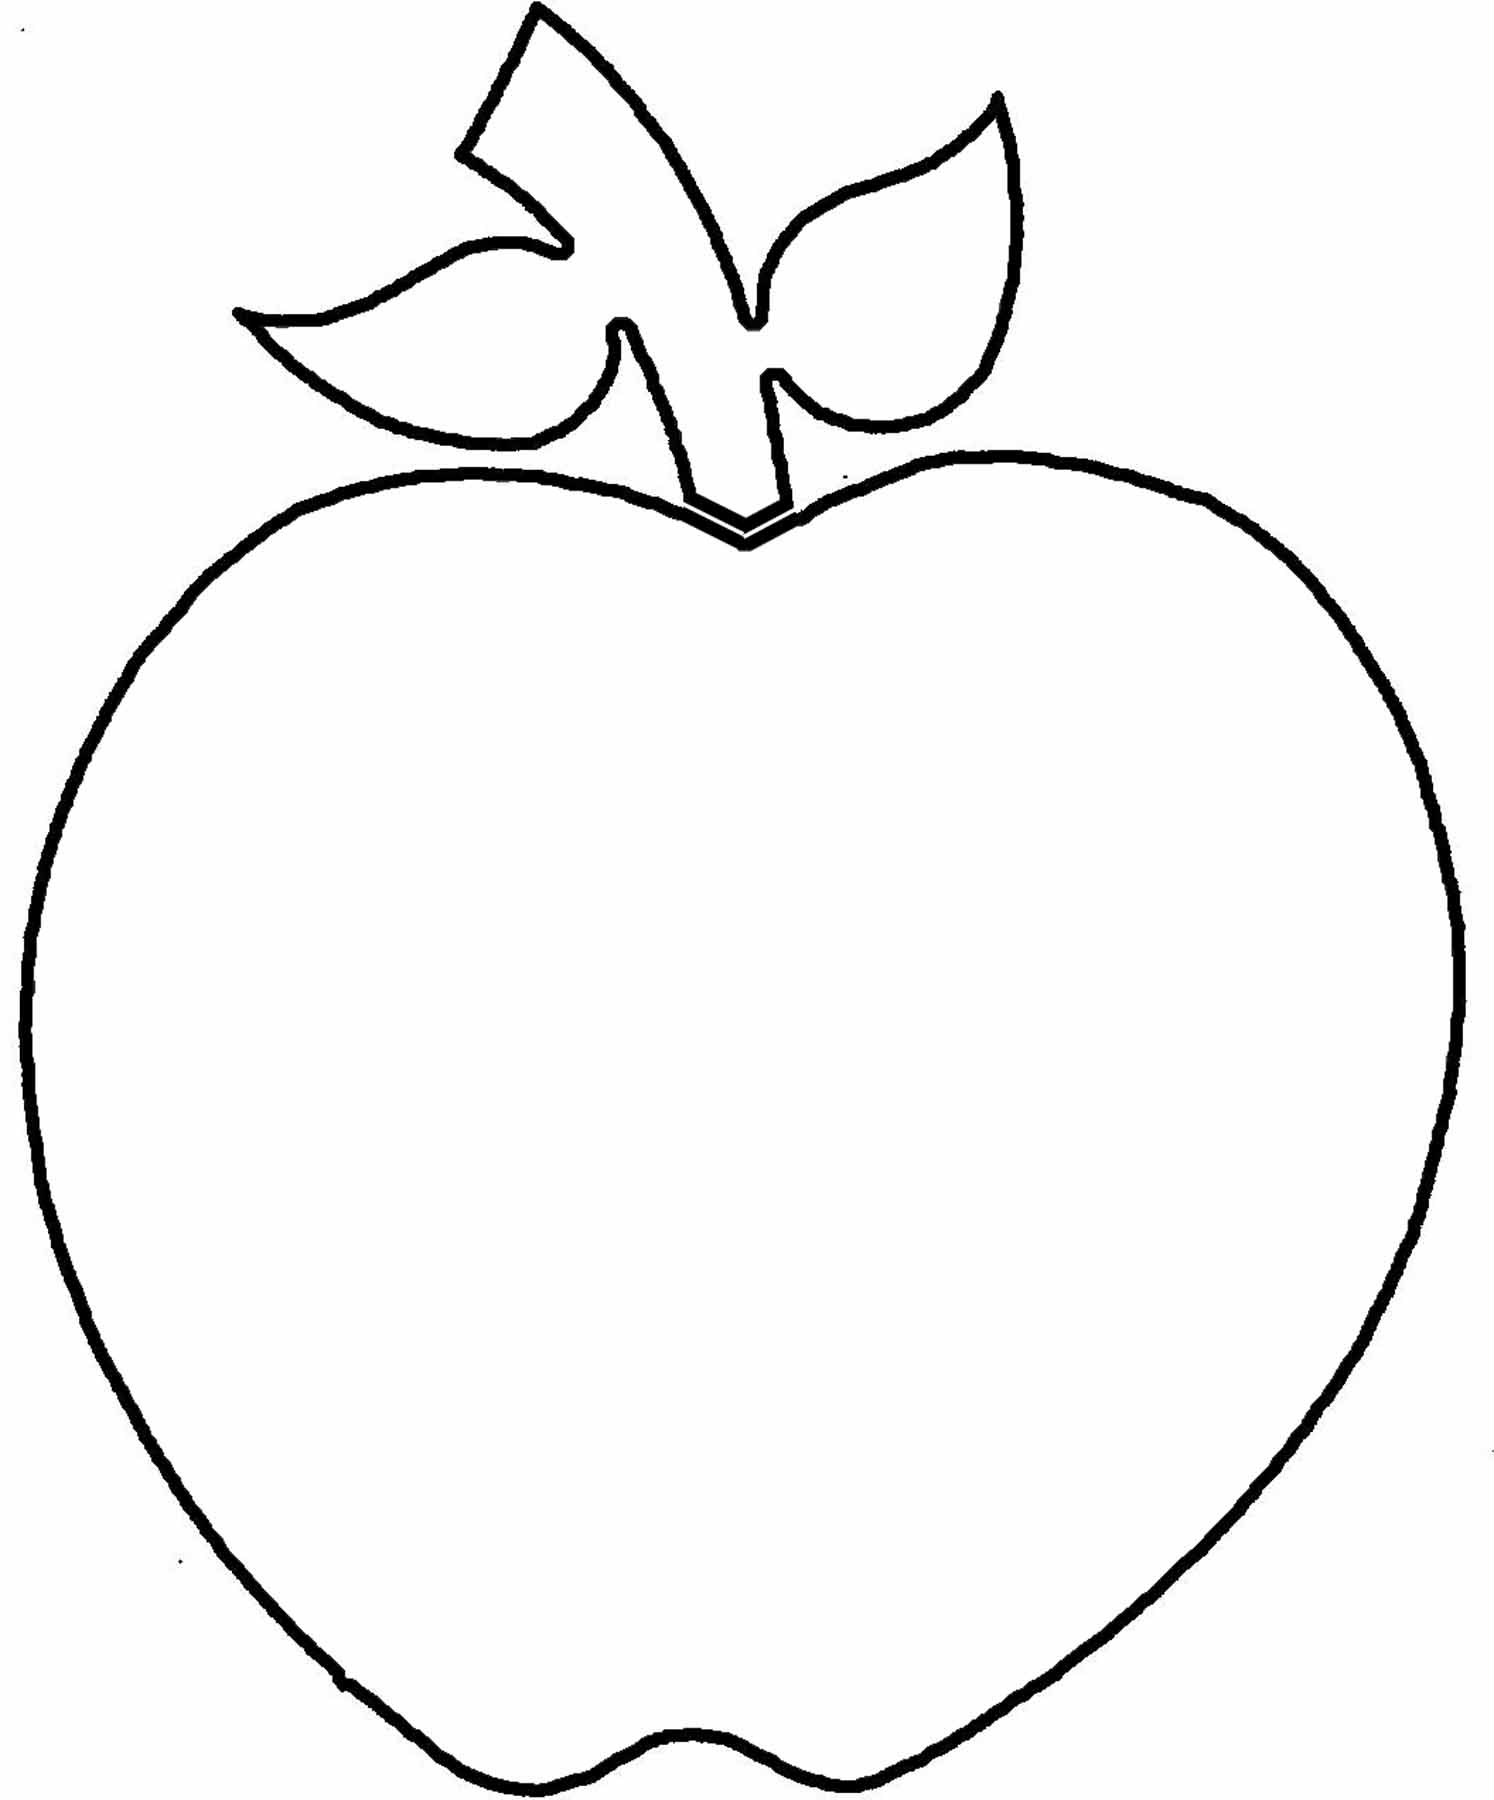 Apple Outline   Clipart Best